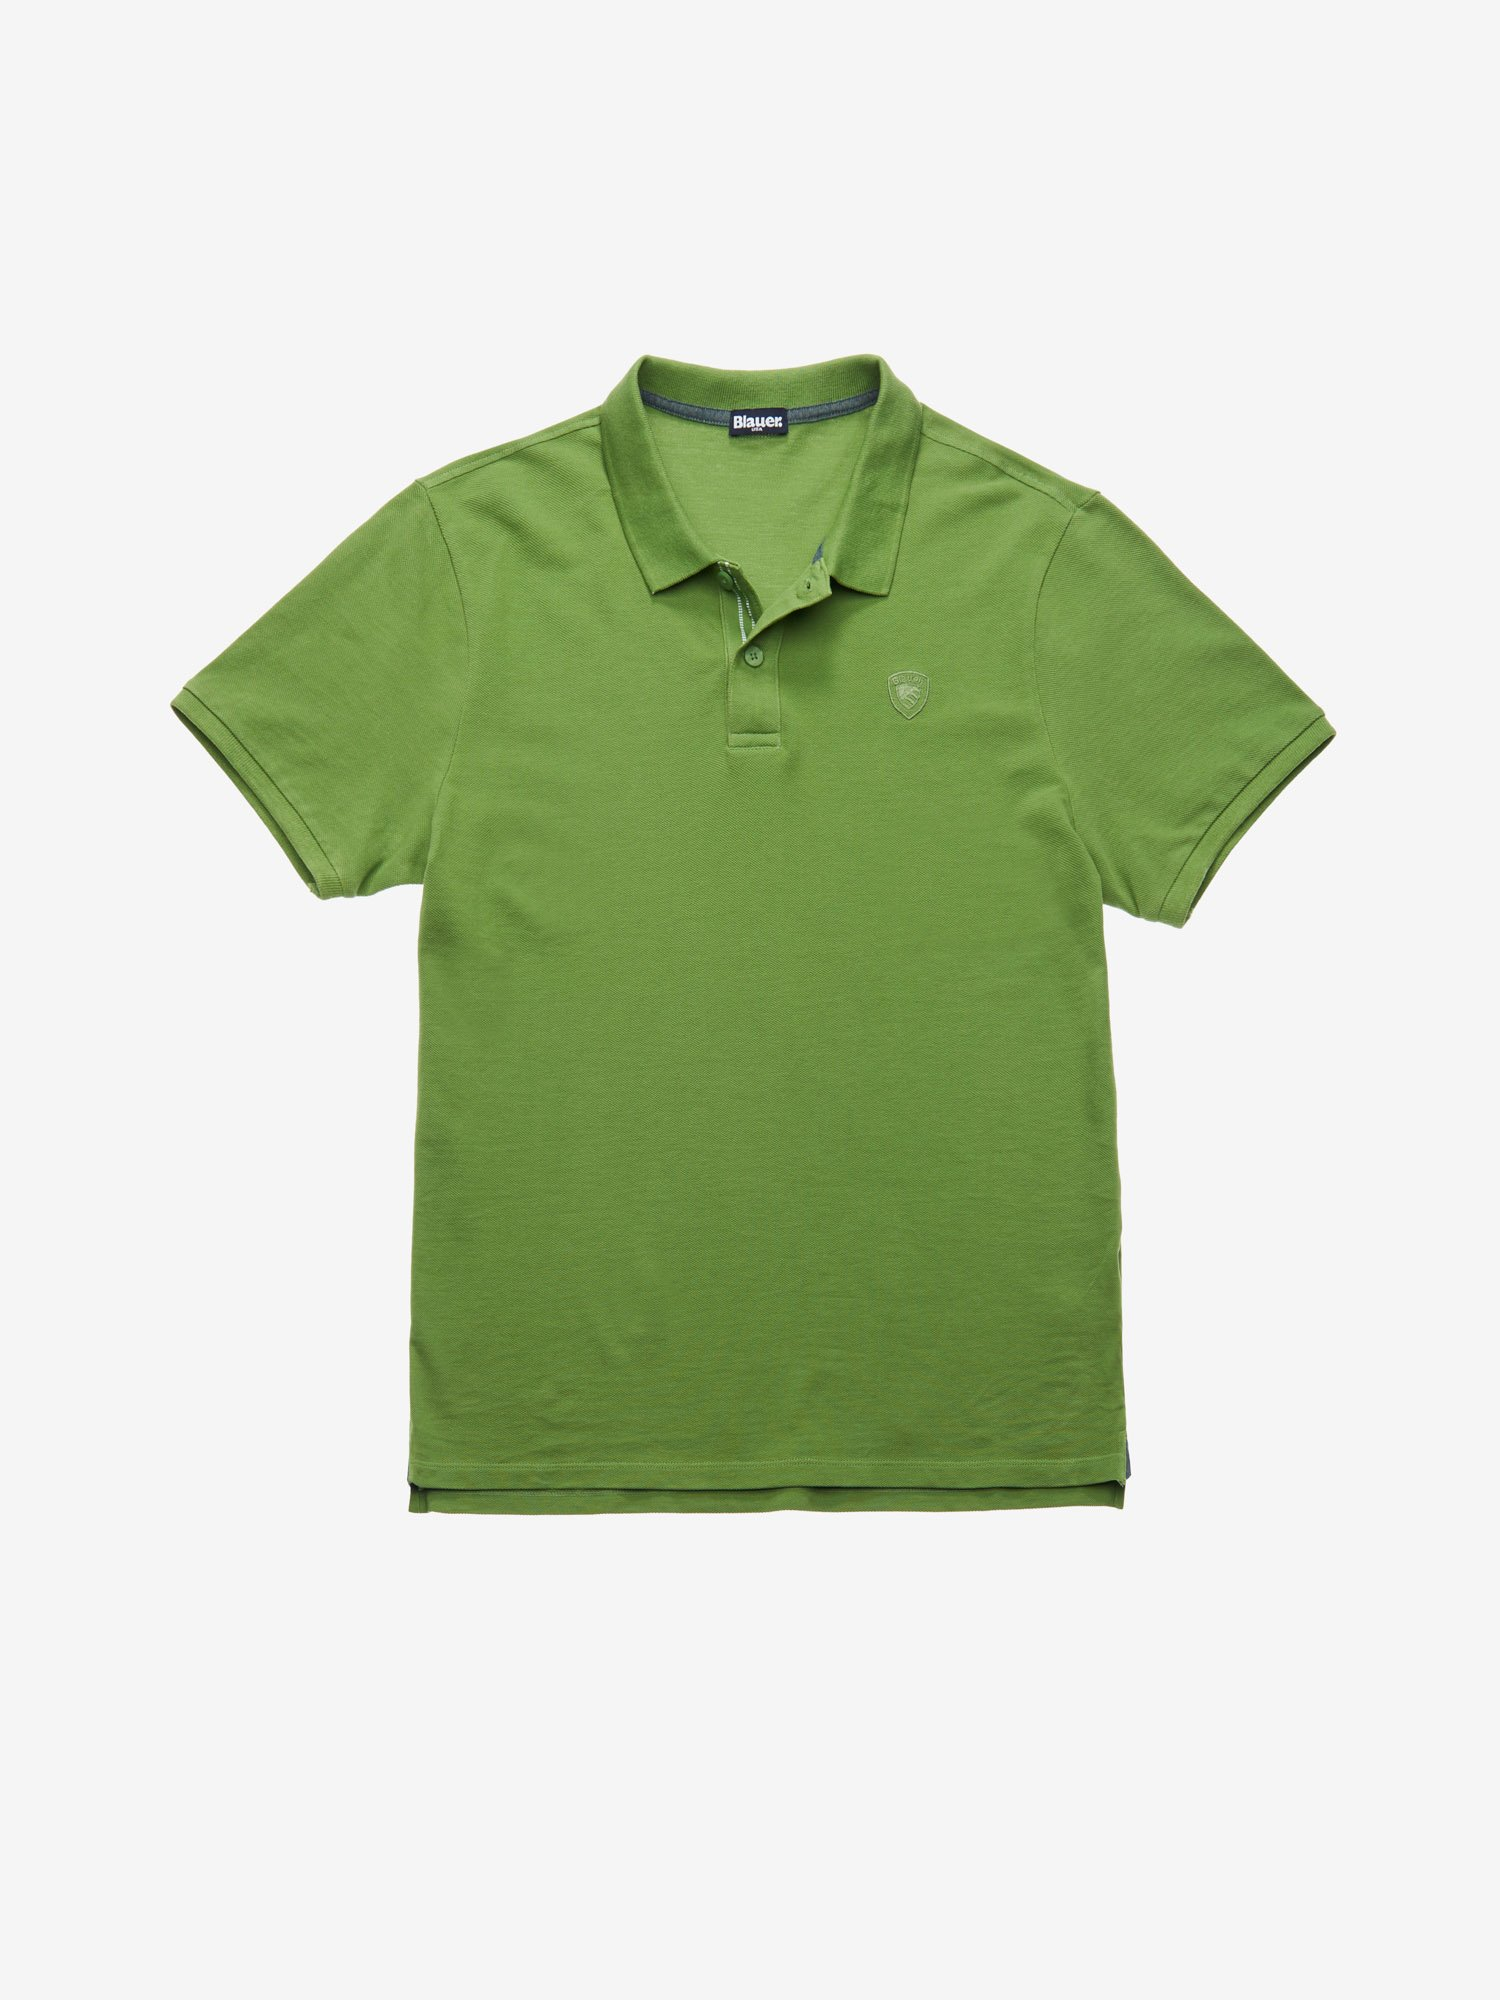 MEN'S SHORT SLEEVE POLO SHIRT - Blauer